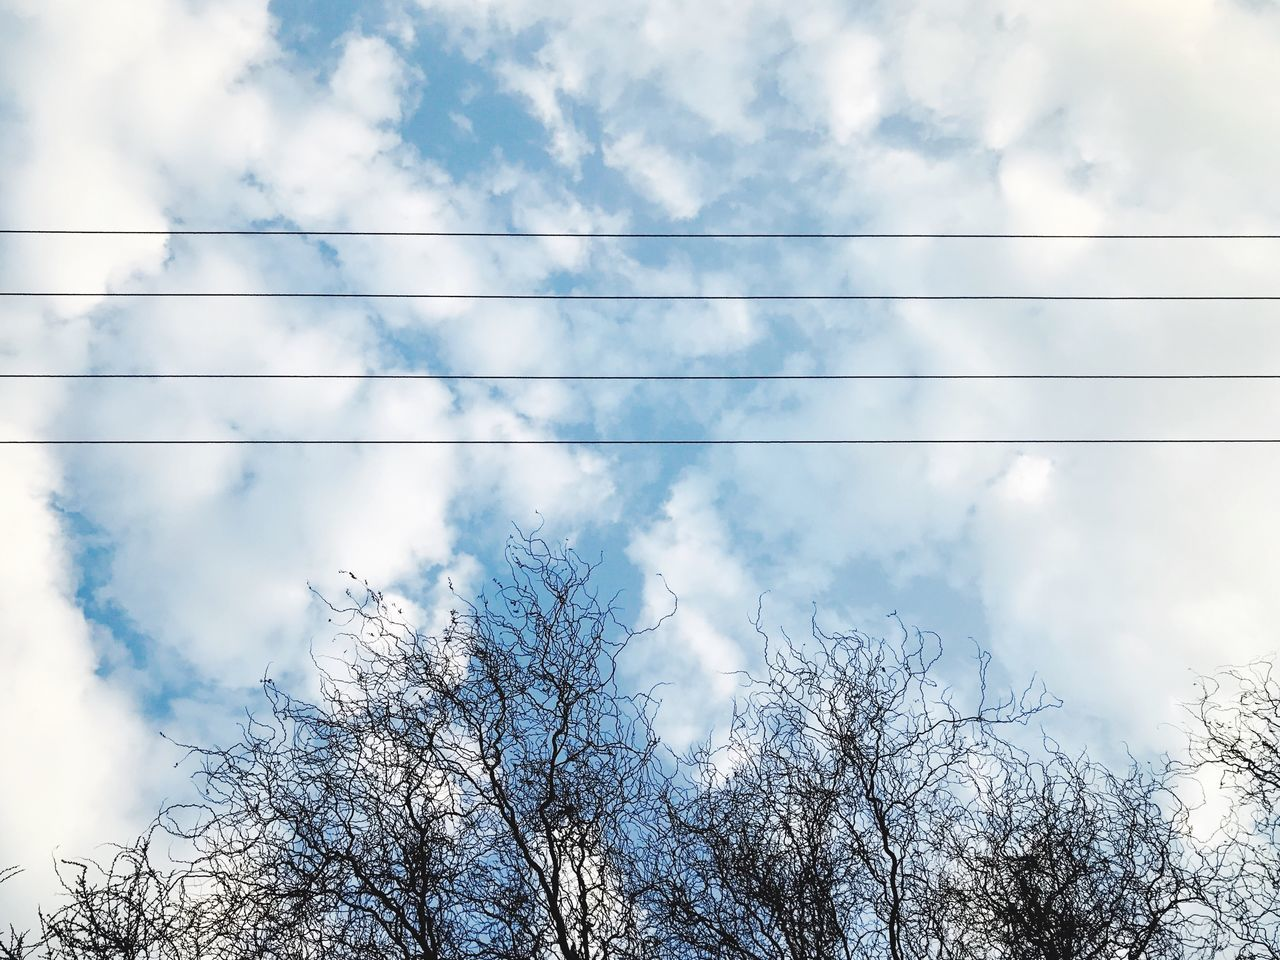 cloud - sky, low angle view, sky, day, nature, no people, beauty in nature, tree, outdoors, tranquility, bare tree, branch